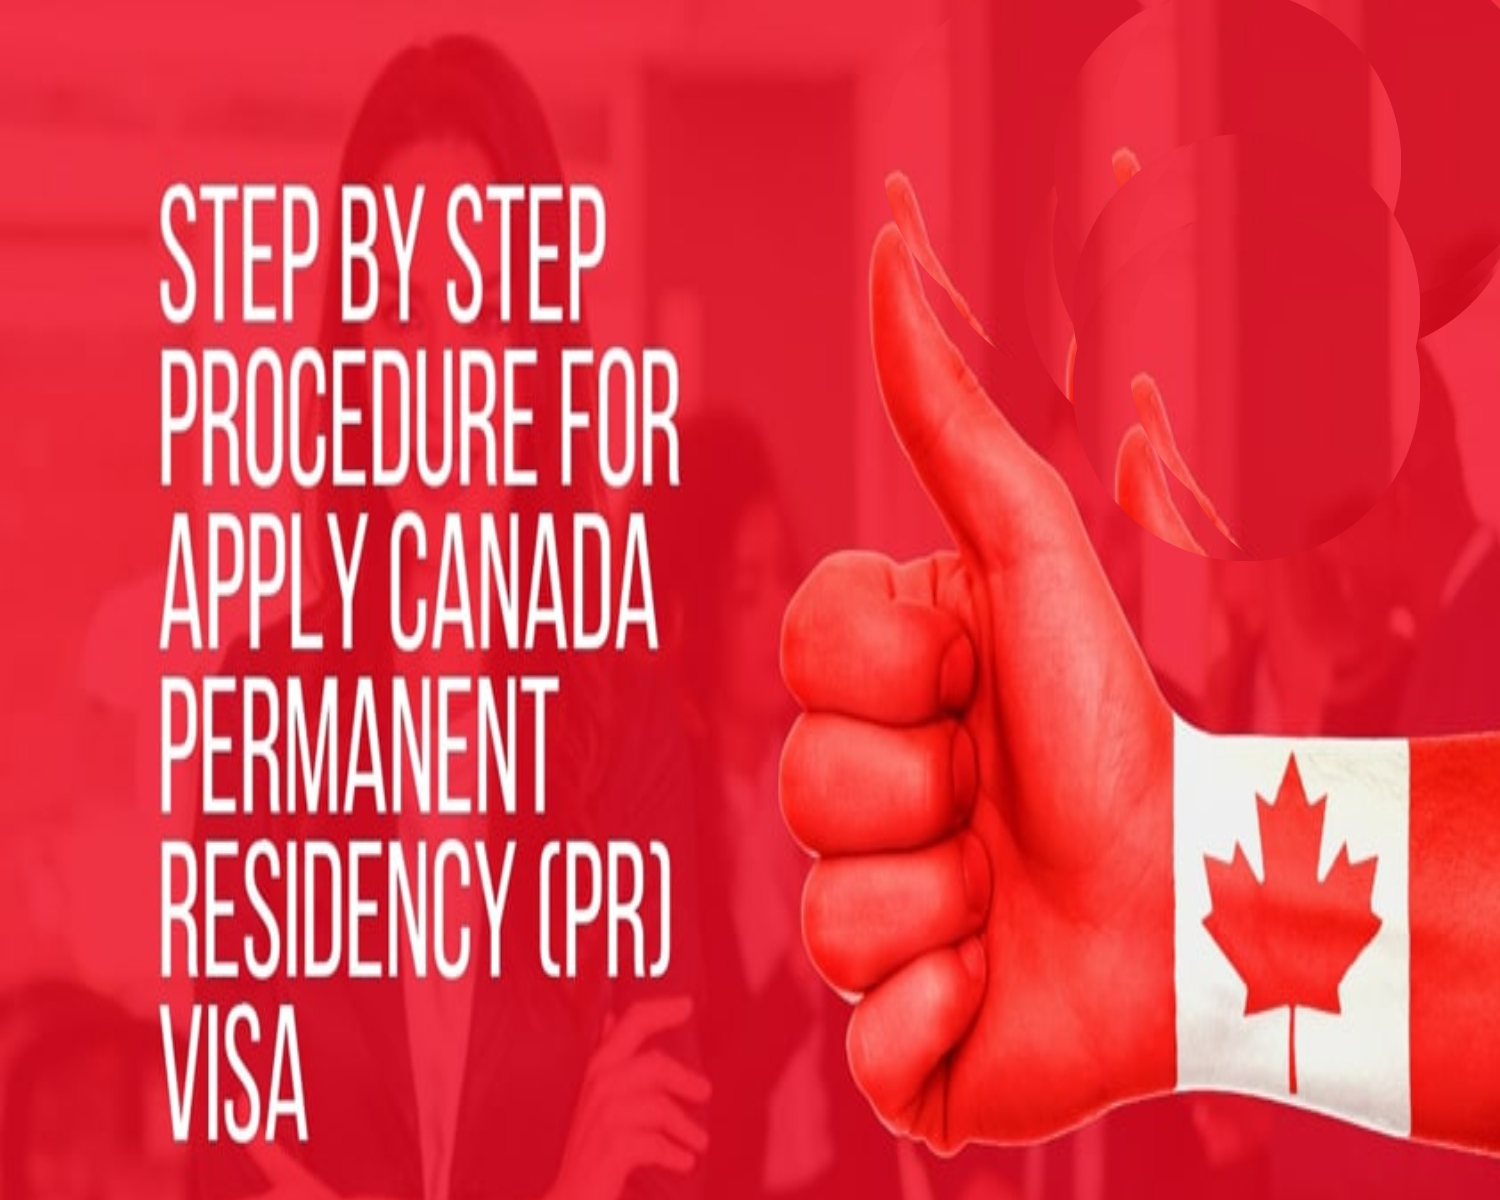 residency requirements for permanent residents